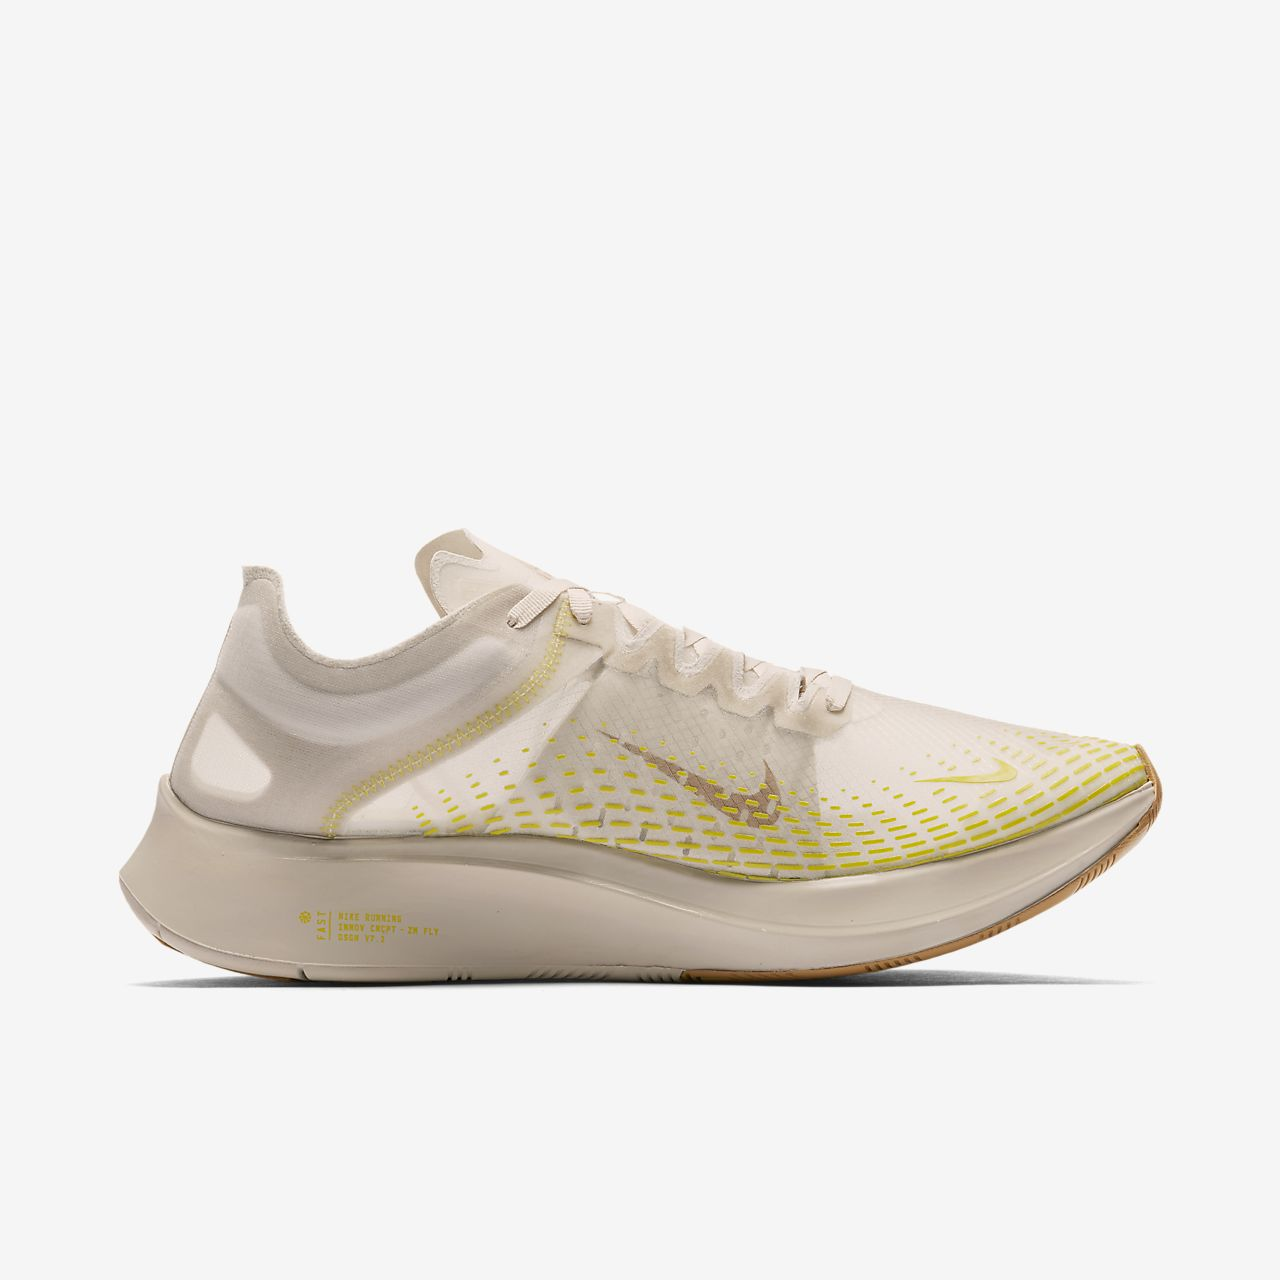 brand new e9220 425fa Ca Fly Zoom Chaussure Nike Running Sp Mixte De Fast Cqqw861